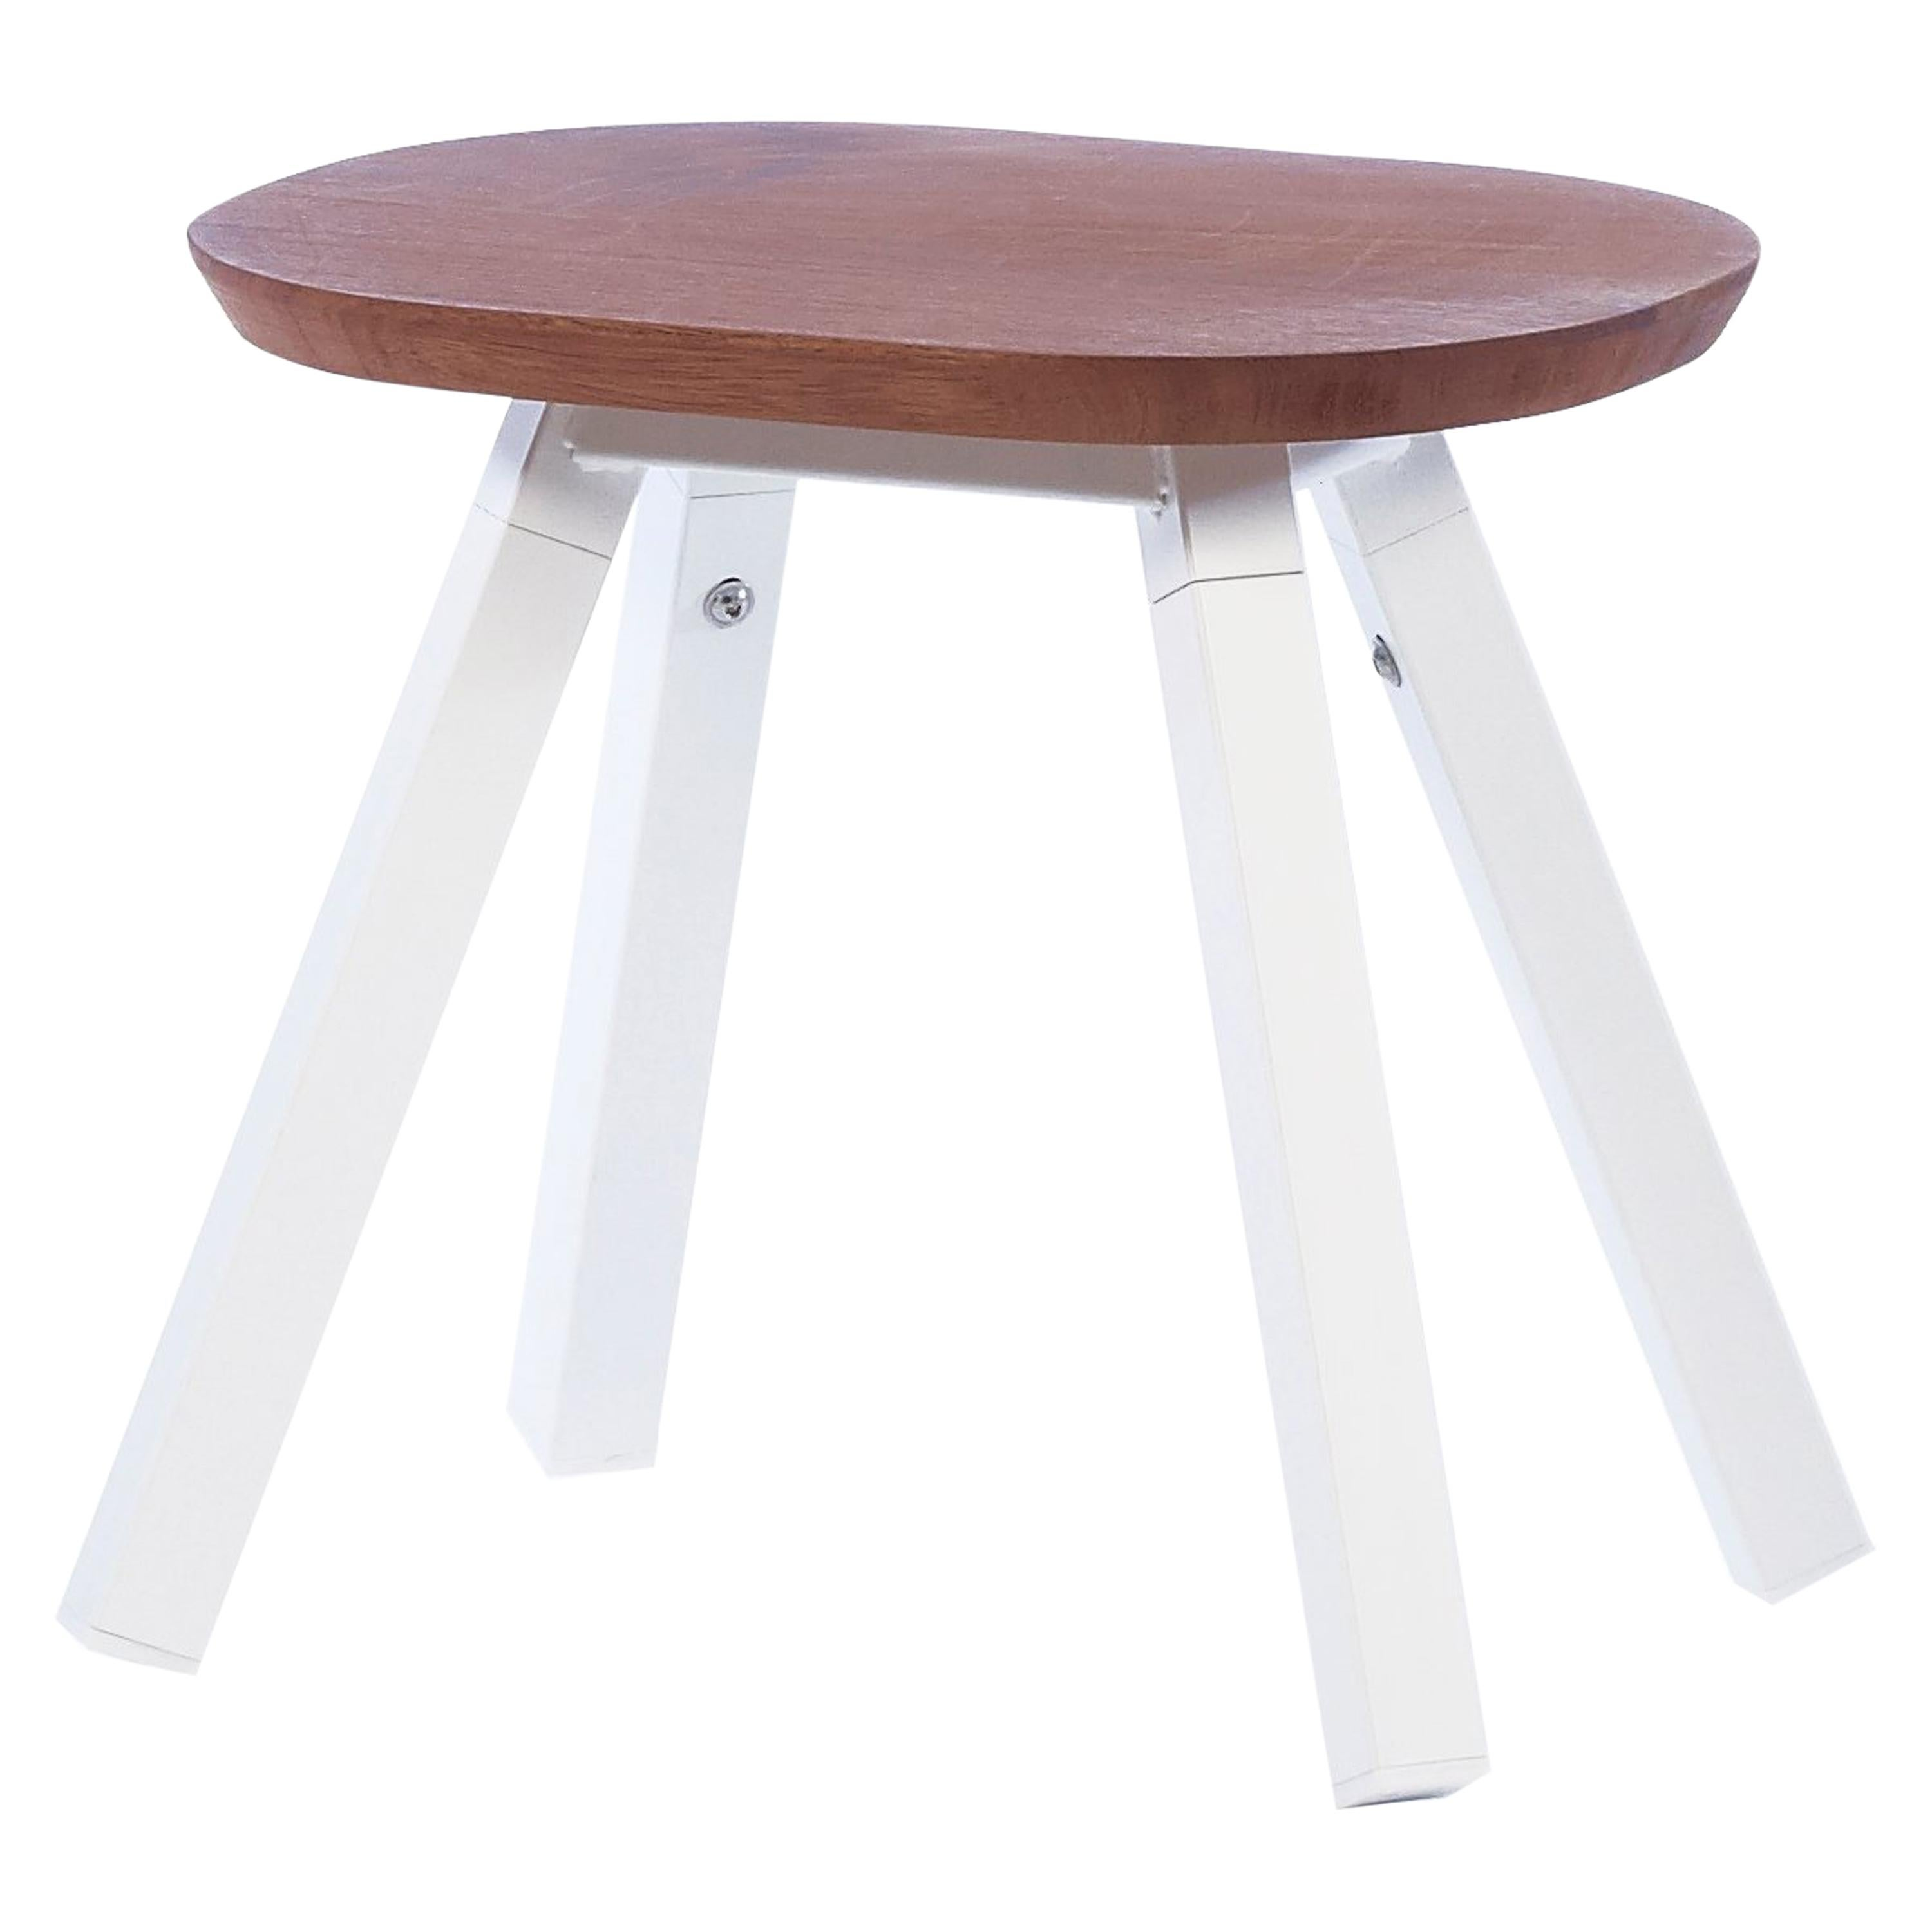 RS Barcelona You & Me Stool in Iroko and White by A.P.O.